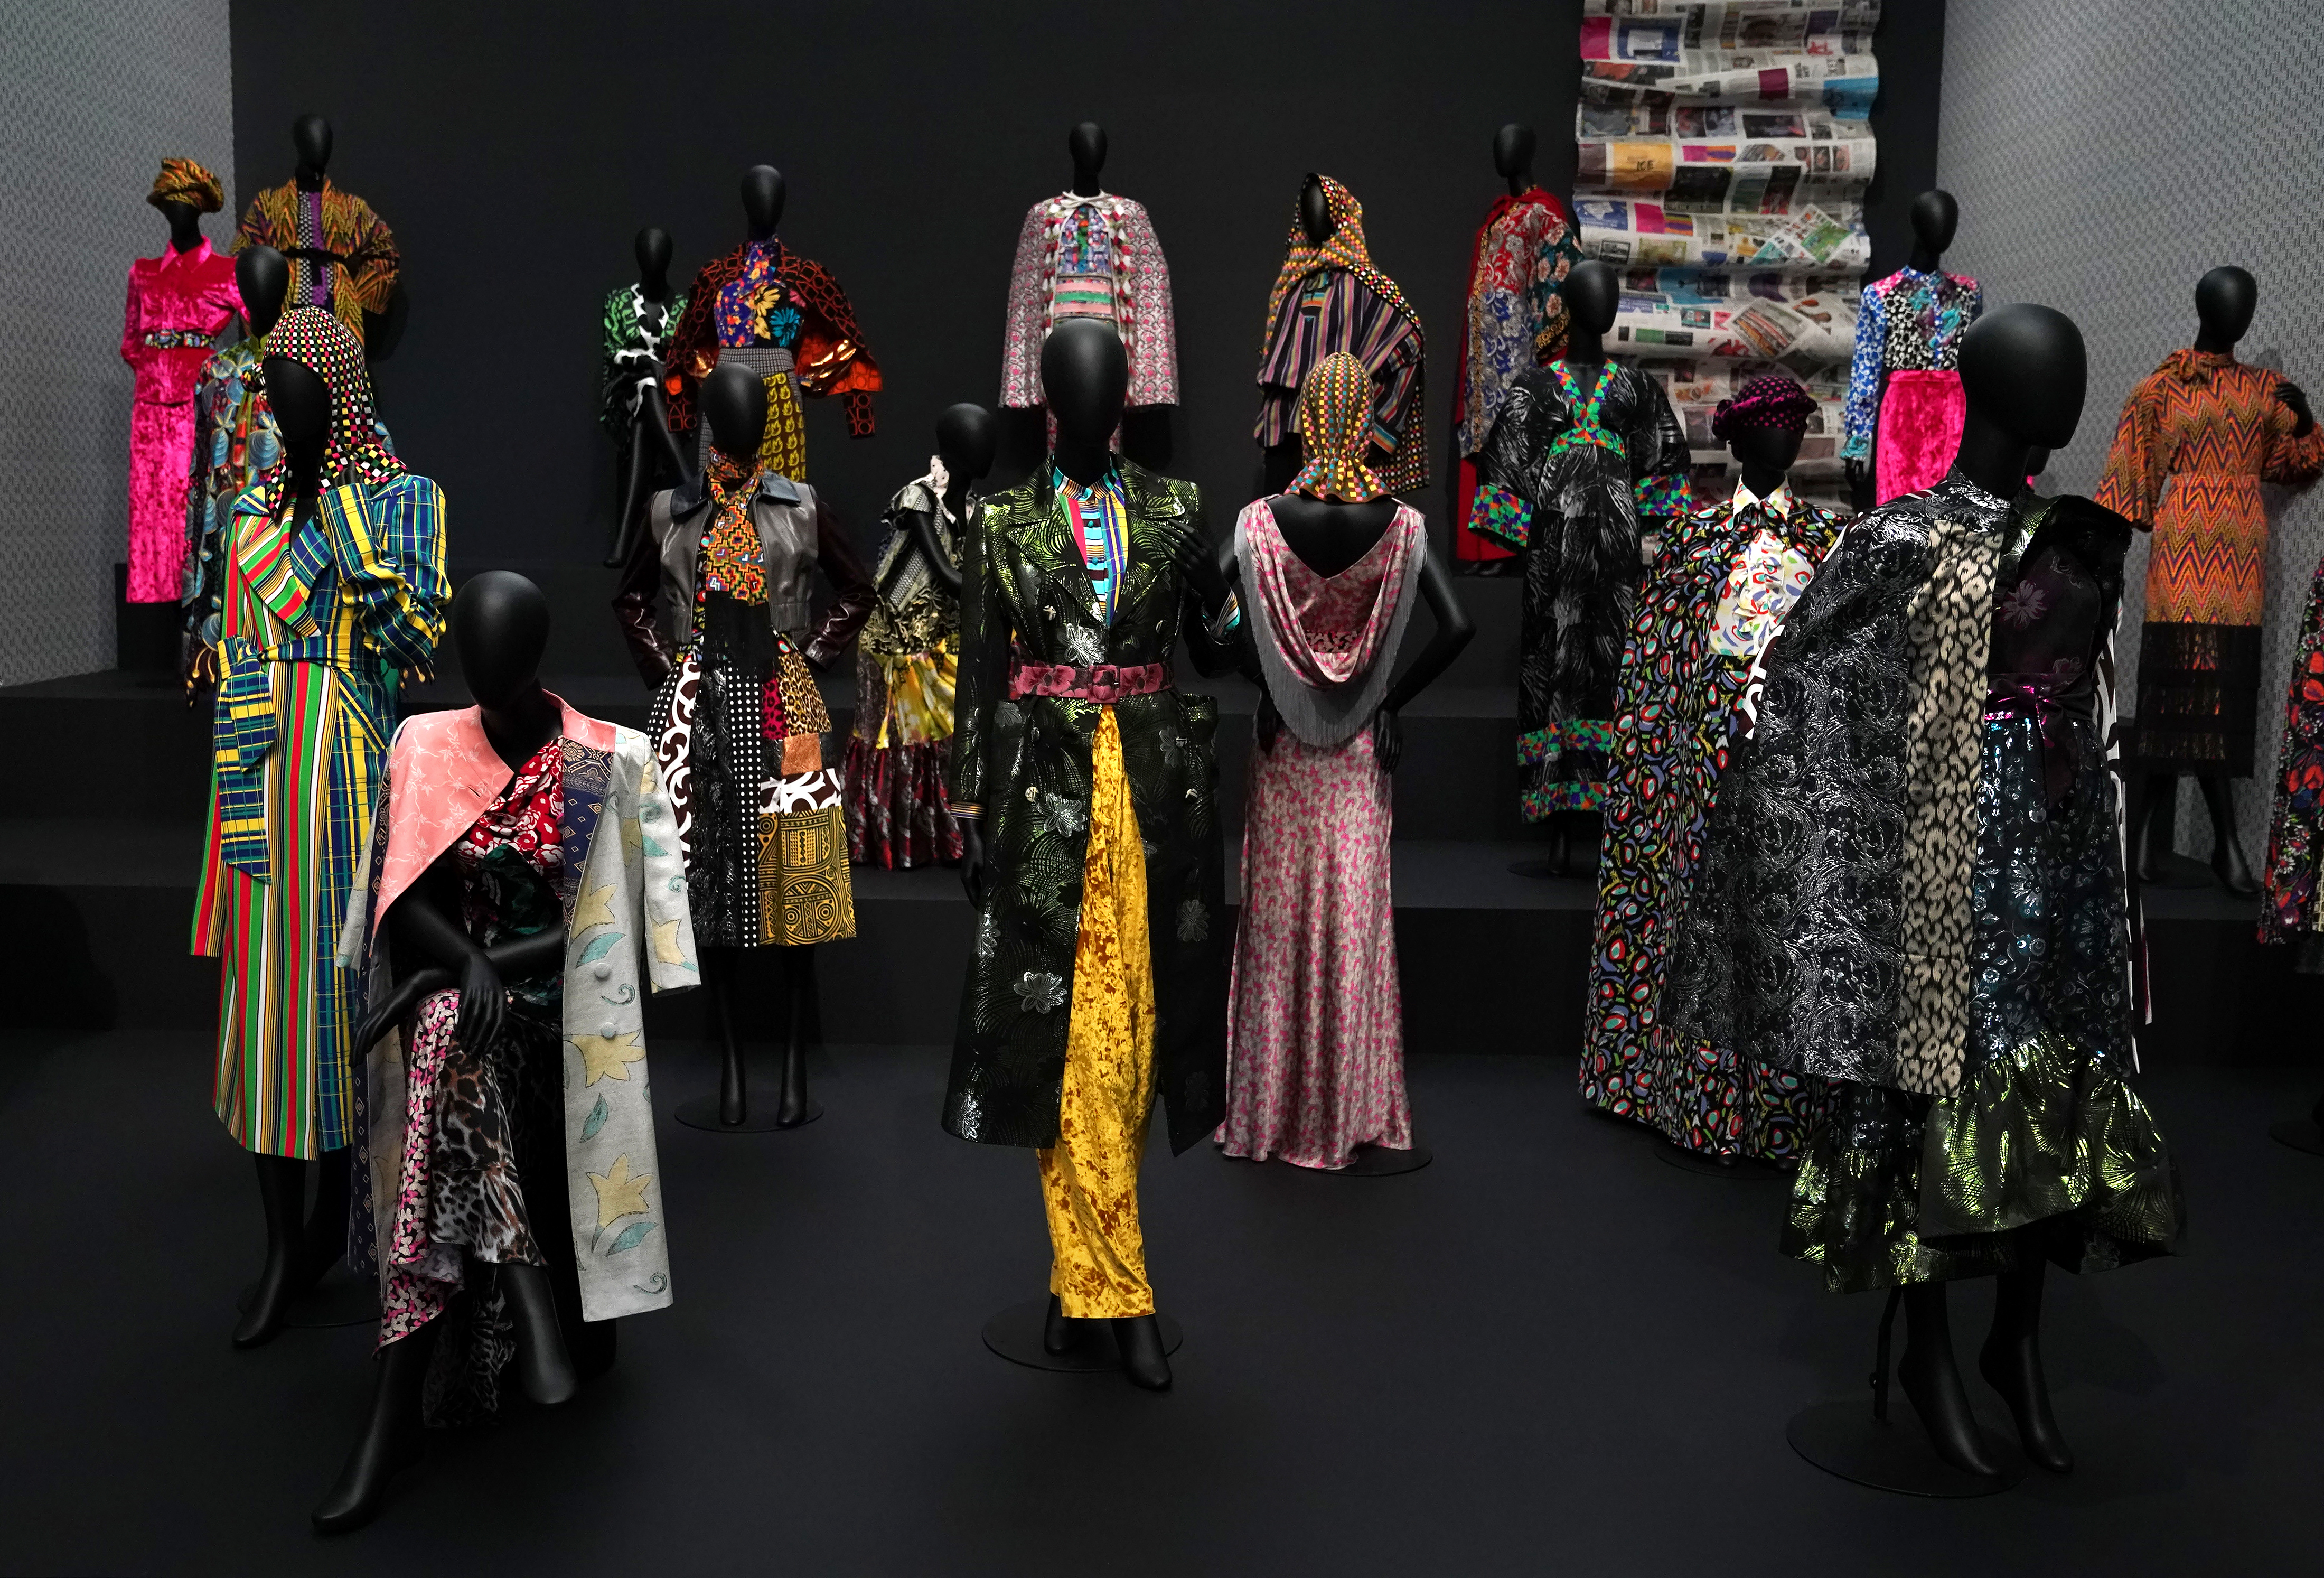 Duro Olowu Show At The Mca Inspired By Chicago Chicago Tribune